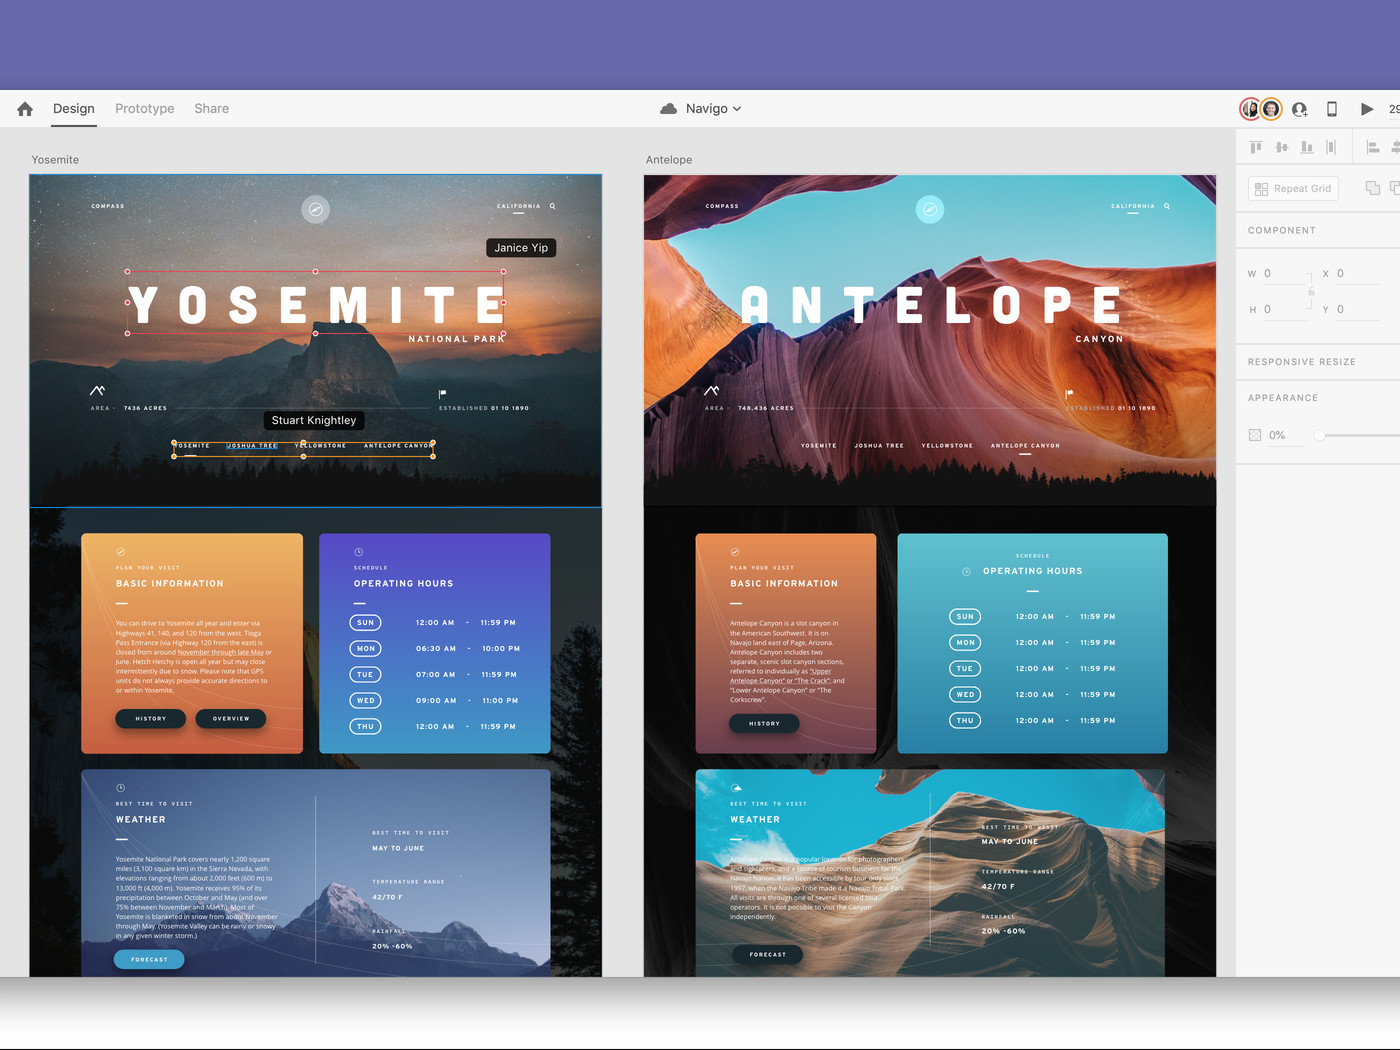 Adobe Xd Does Collaborative Editing Now Just Like Figma The Verge